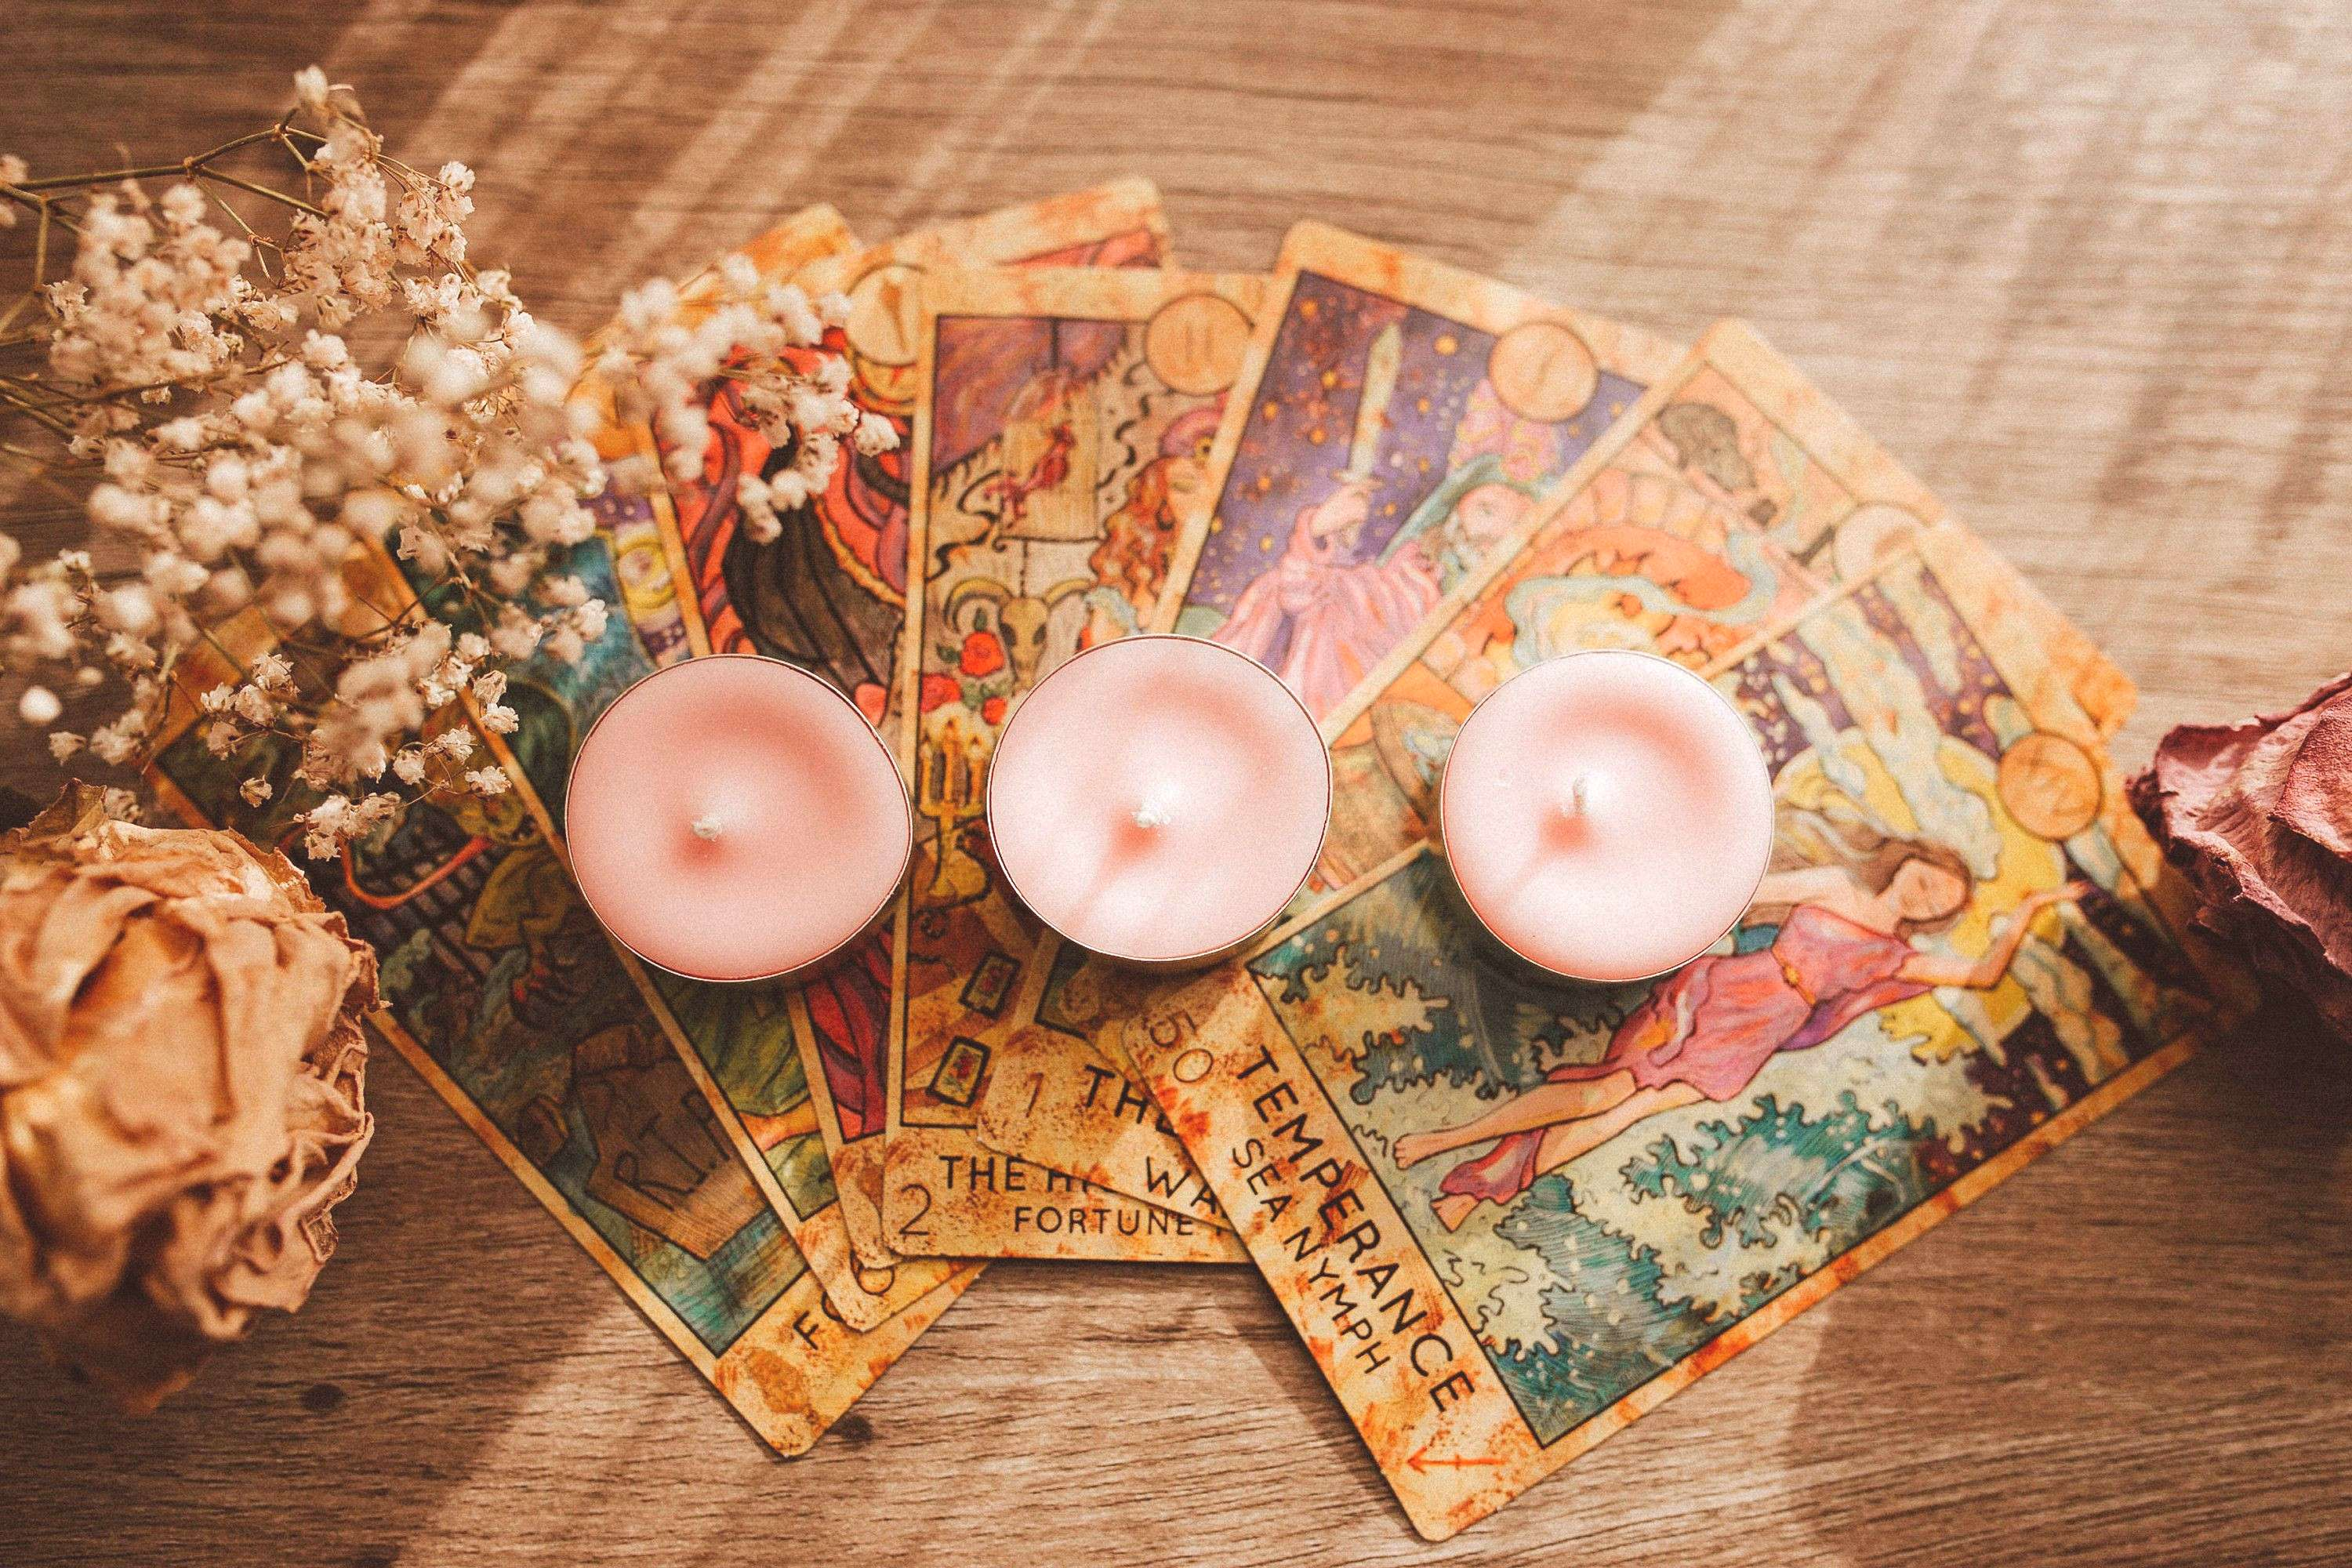 Pink Wiccan Spell Candles - Unscented Tealights for Witchcraft Altar and Ritual - Candle Spell for